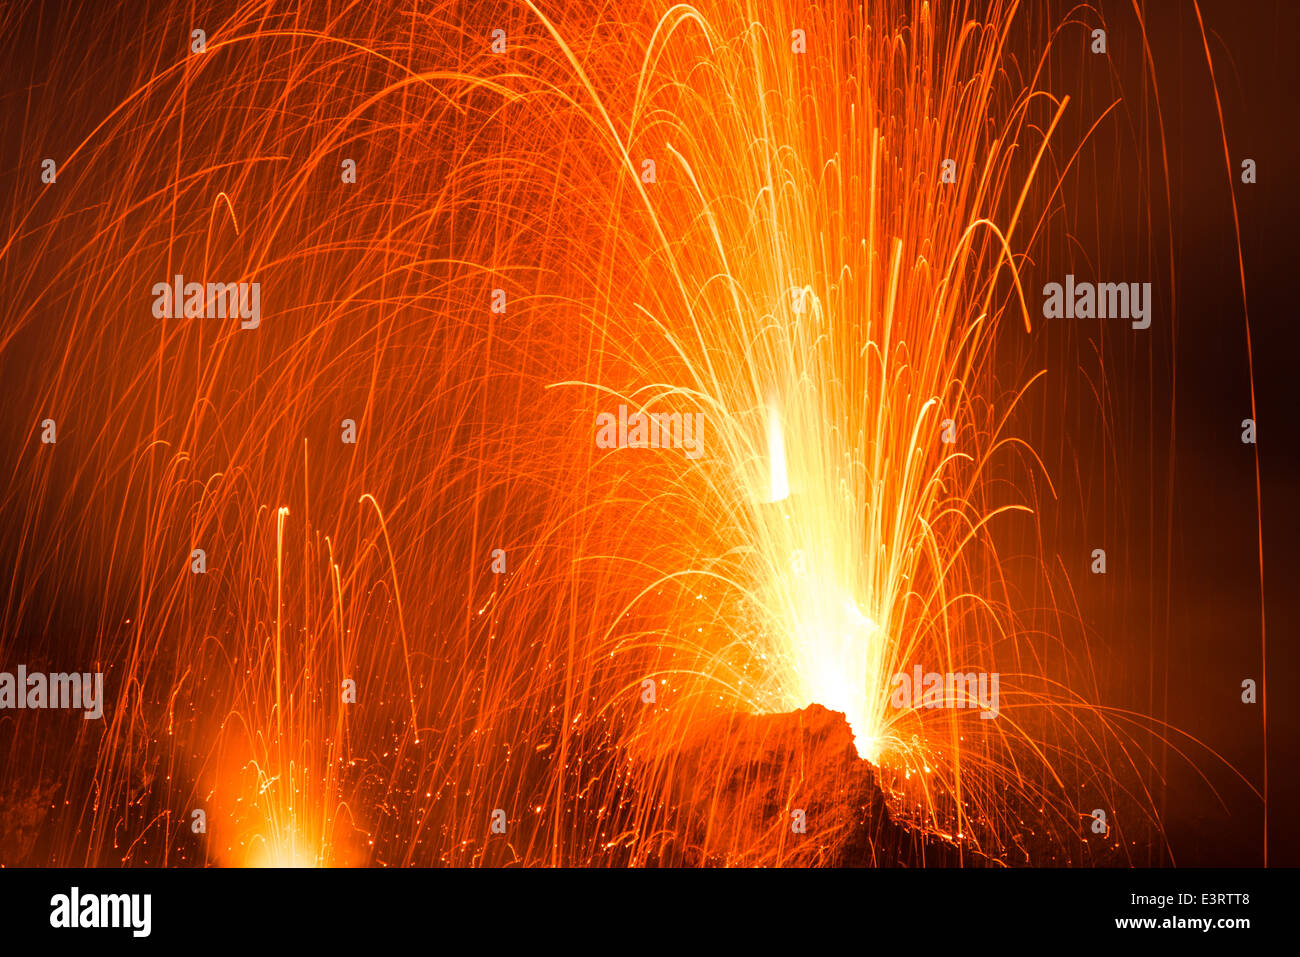 Volcanic eruption at Stromboli volcano, Eolian Islands: strombolian eruptions and lava fountains from the active - Stock Image